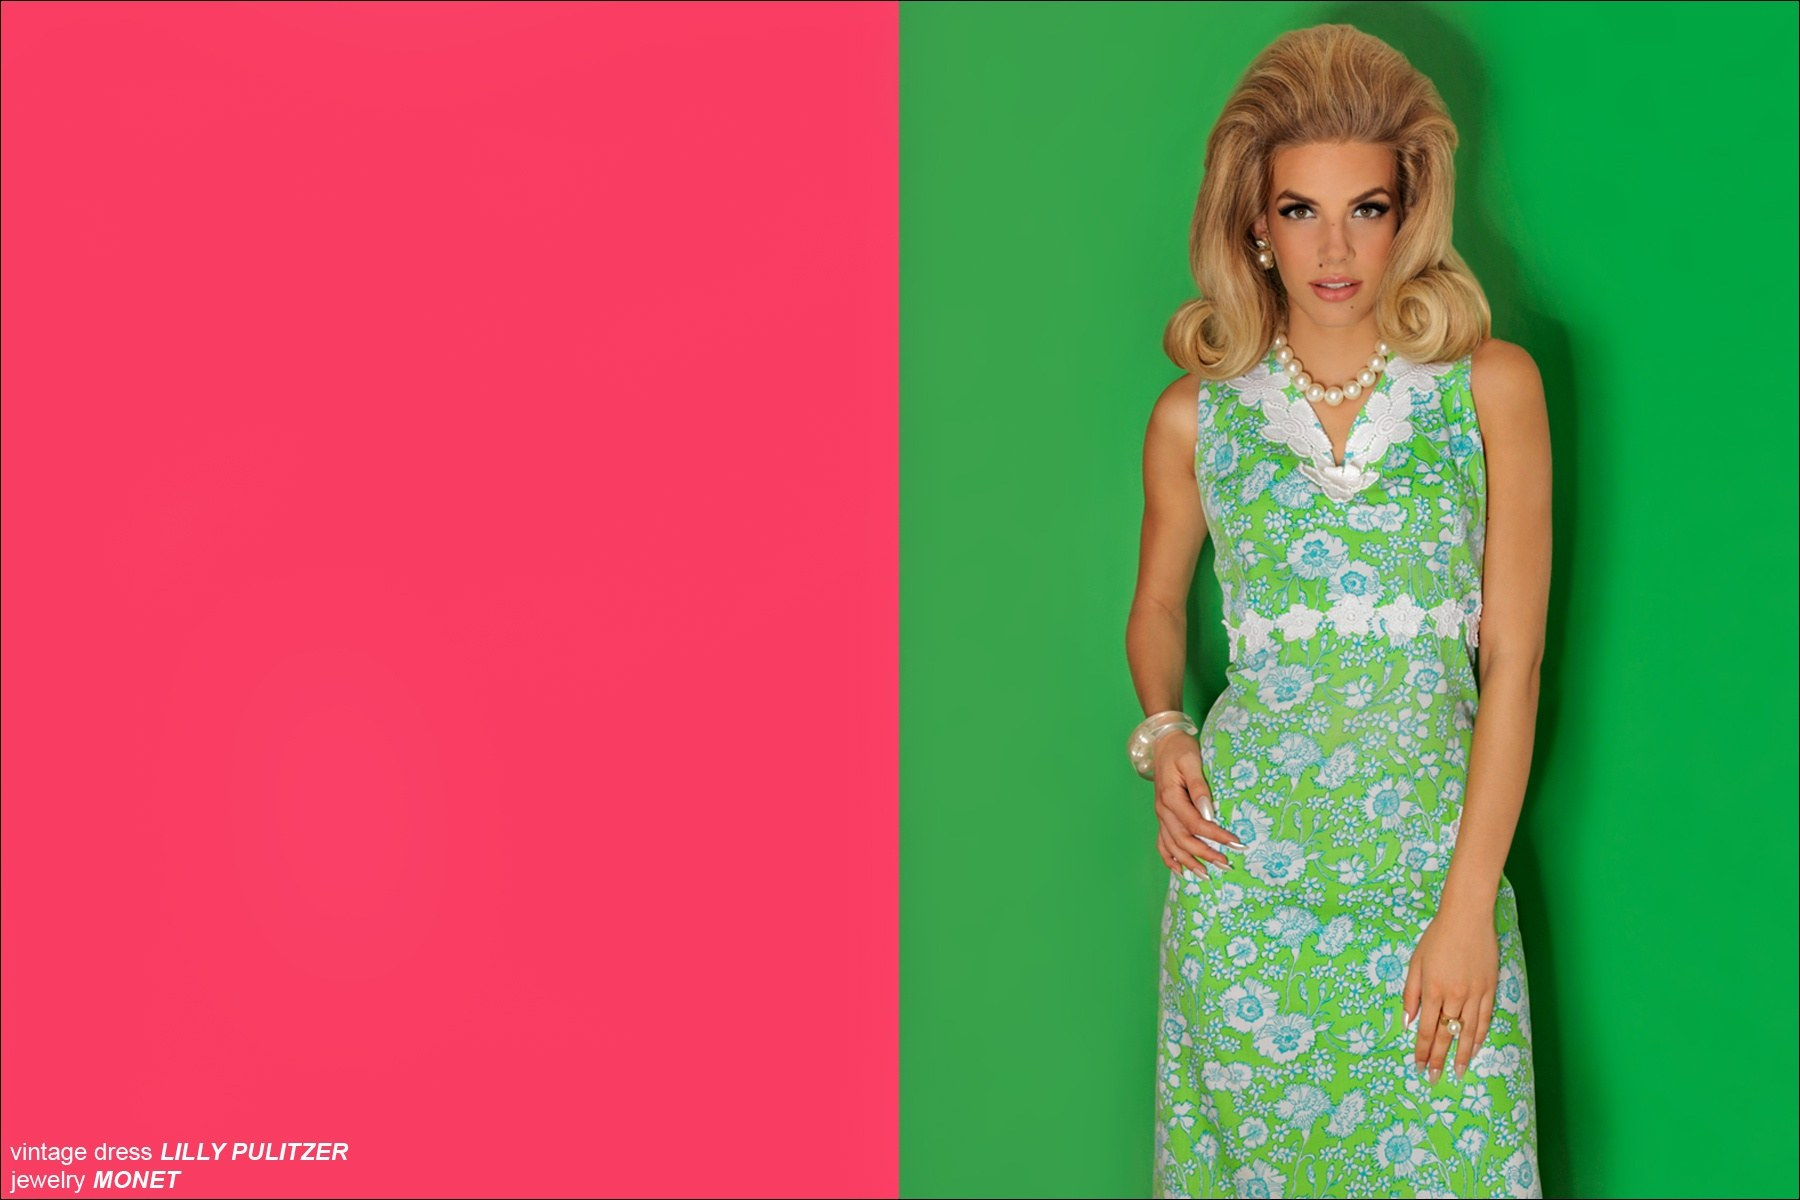 VIntage Lilly Pulitzer dress, worn by Model Greta Hanza from Muse Models NYC, photographed by Alexander Thompson.